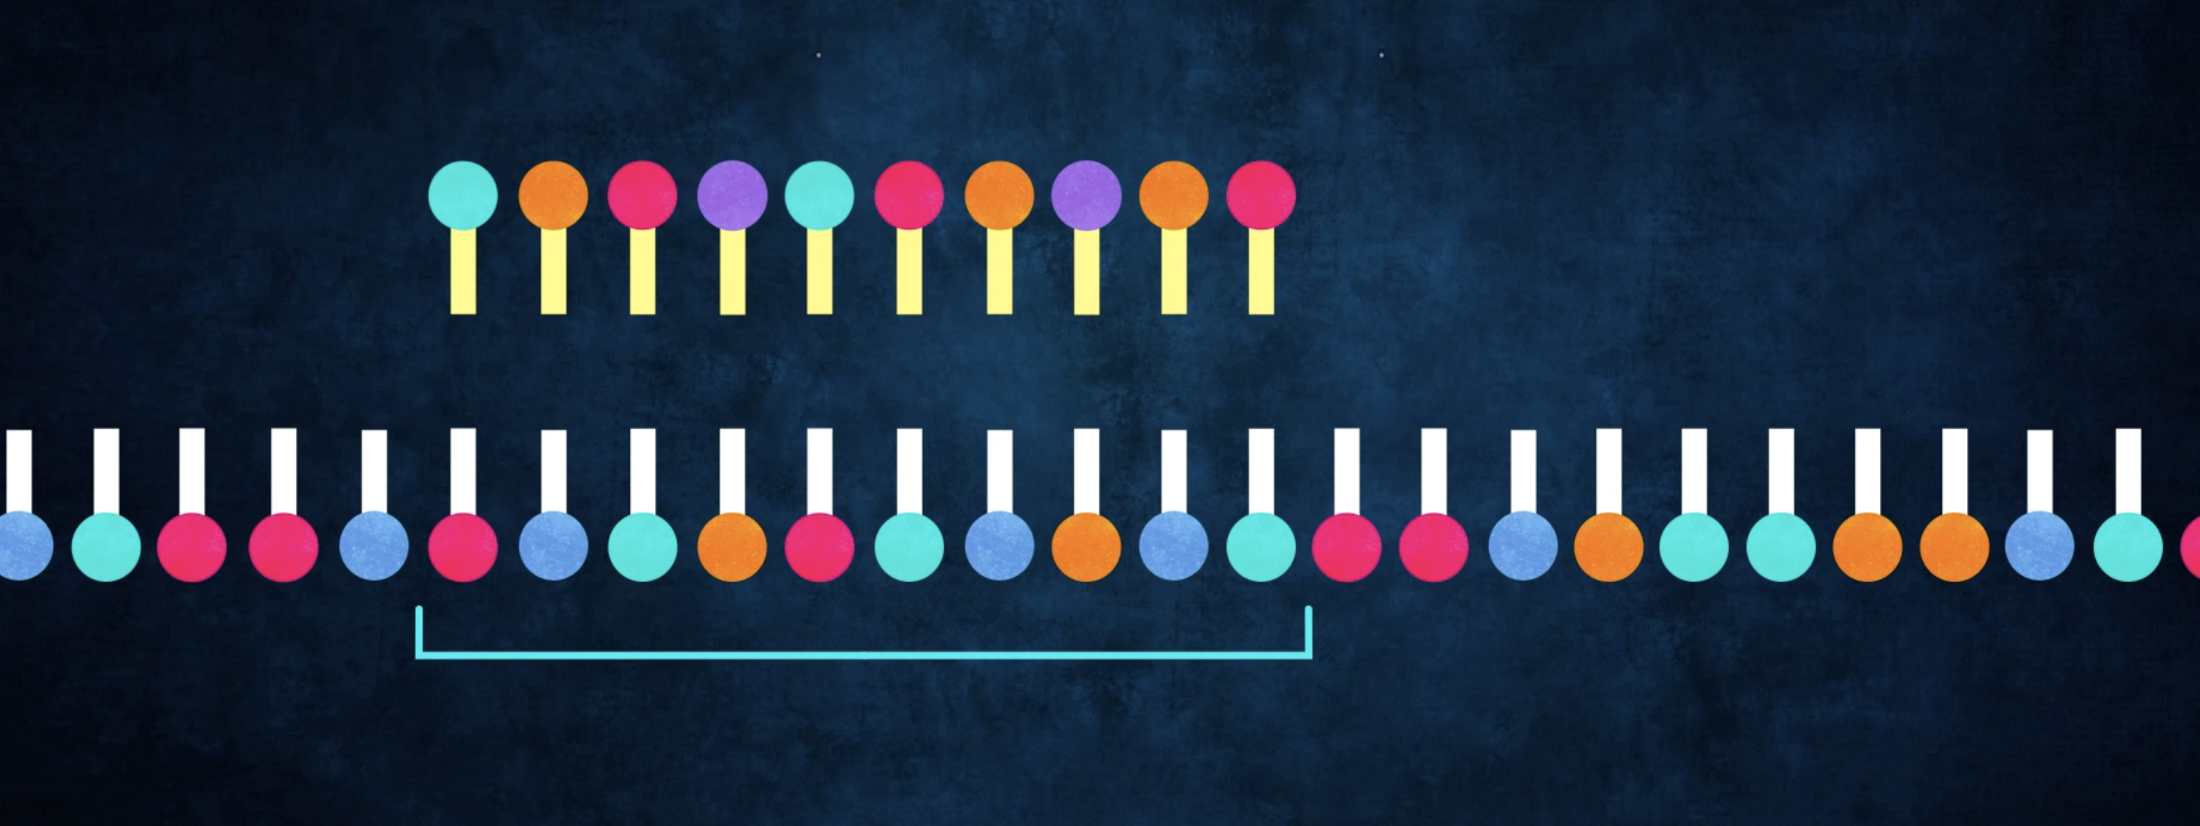 section_of_dna.png